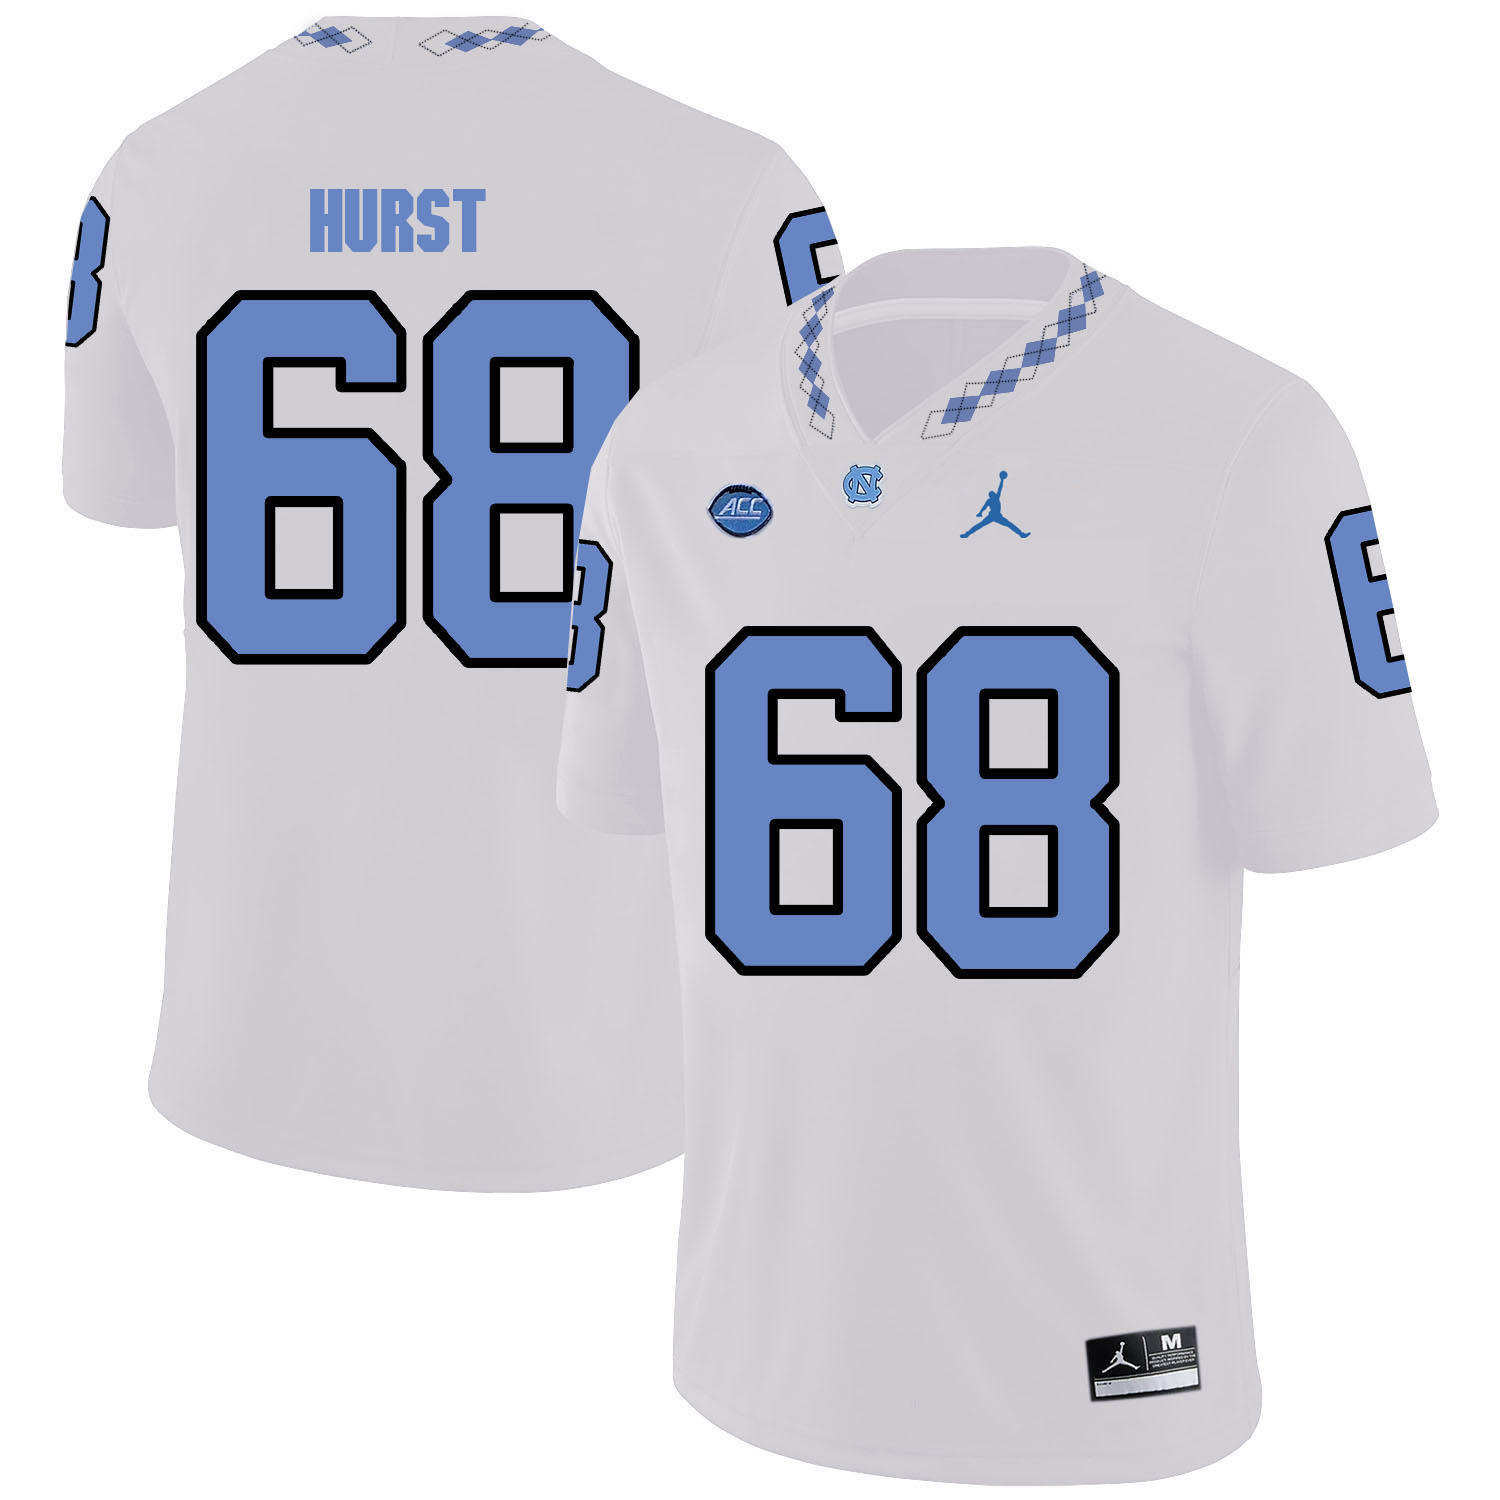 North Carolina Tar Heels 68 James Hurst White College Football Jersey